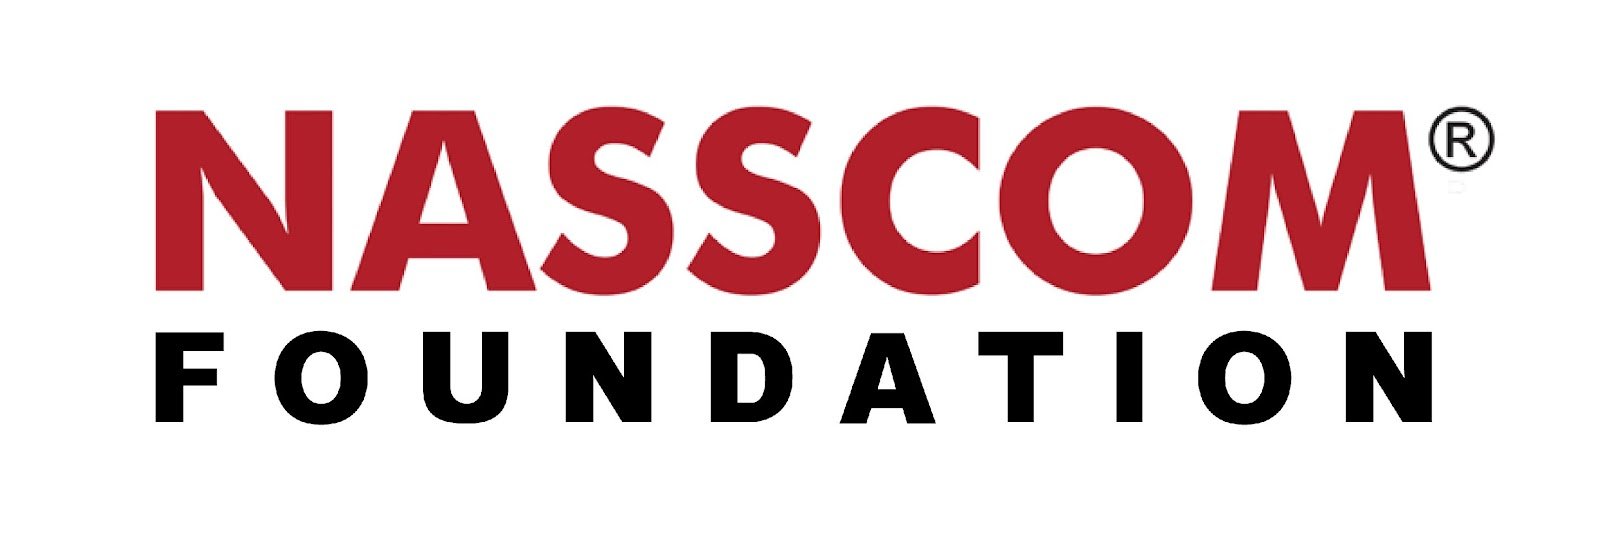 C:\Desktop my laptop\Misc\NASSCOM-Foundation-Logo.jpg